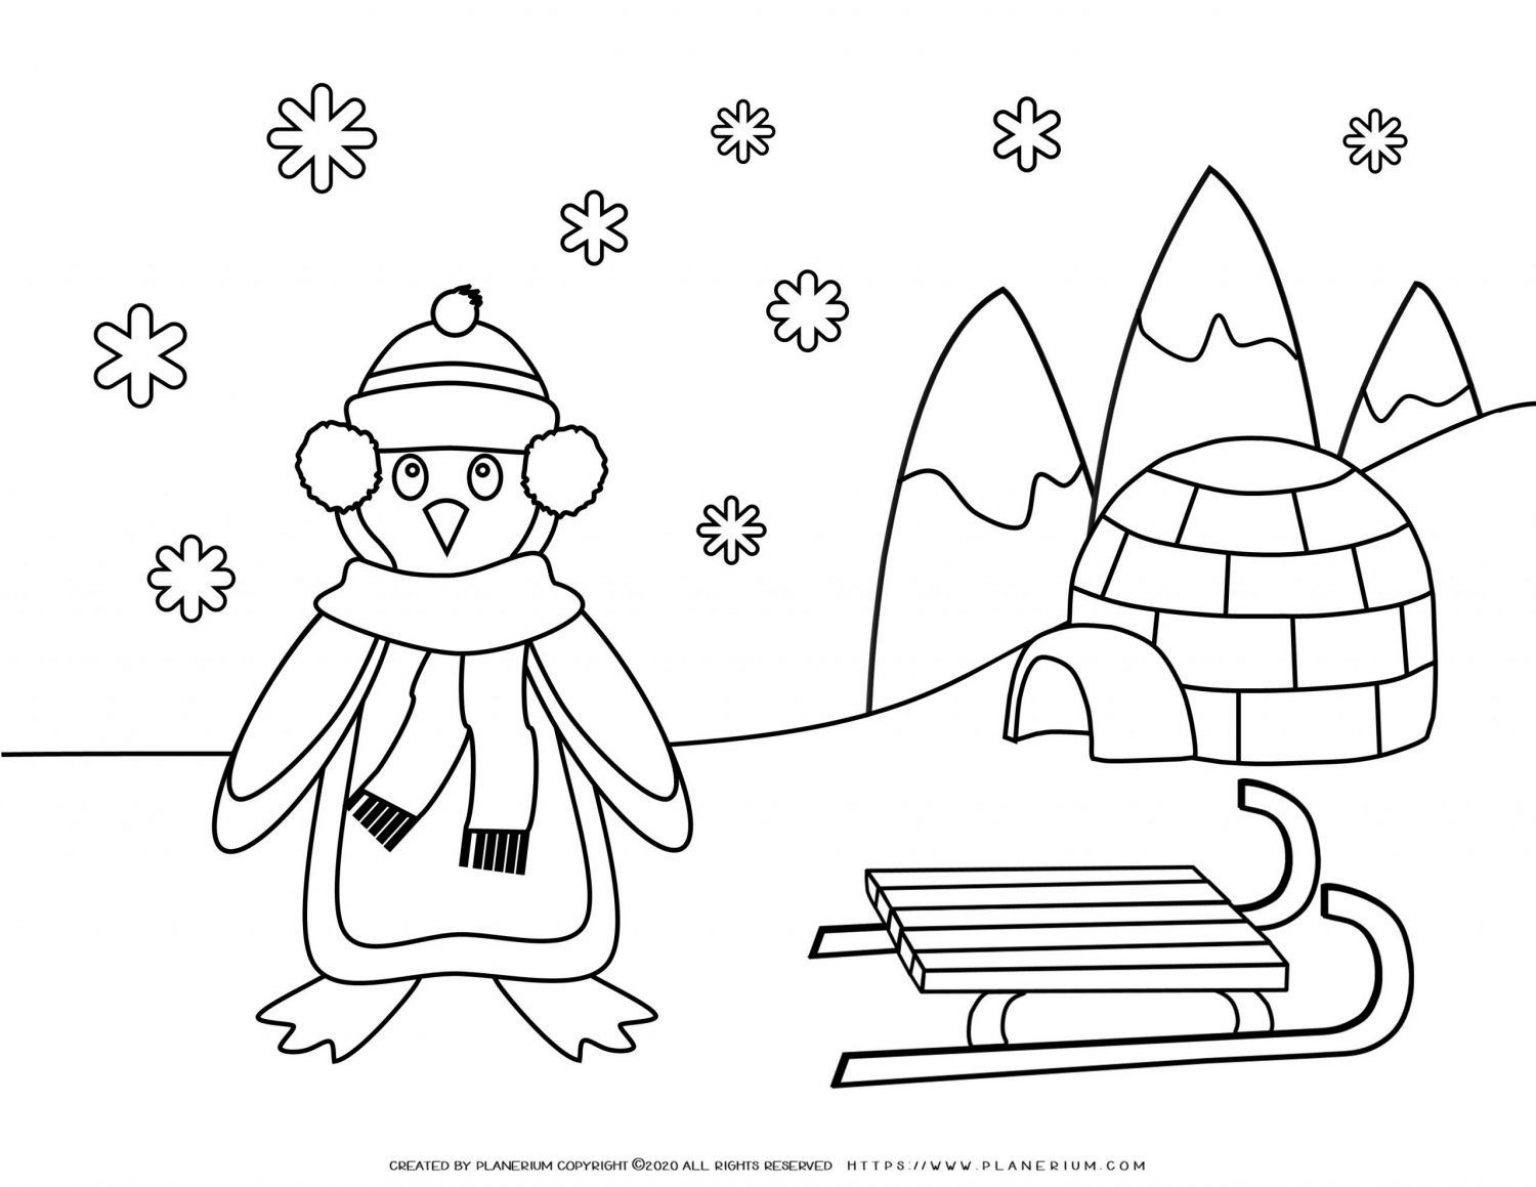 Winter Coloring Page - Penguin in the Snow | Planerium